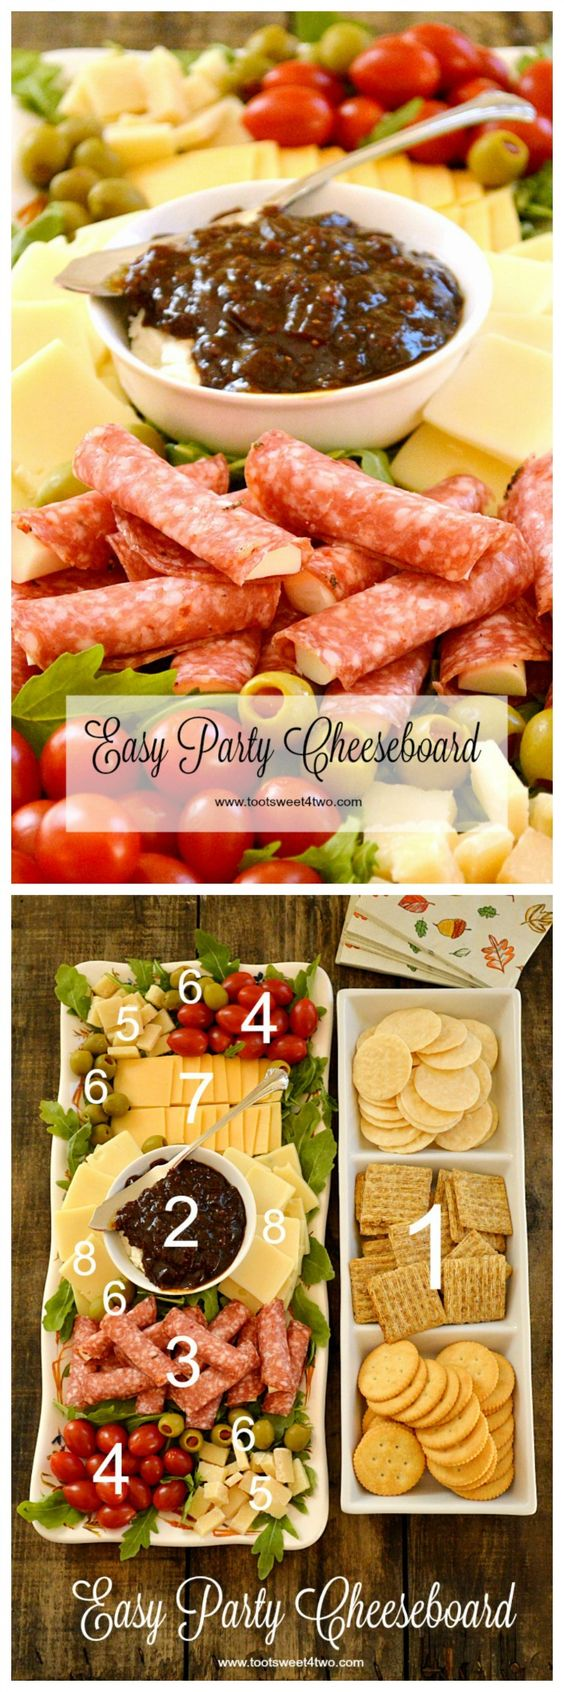 Easy Party Cheeseboard - instructions and recipe included!: